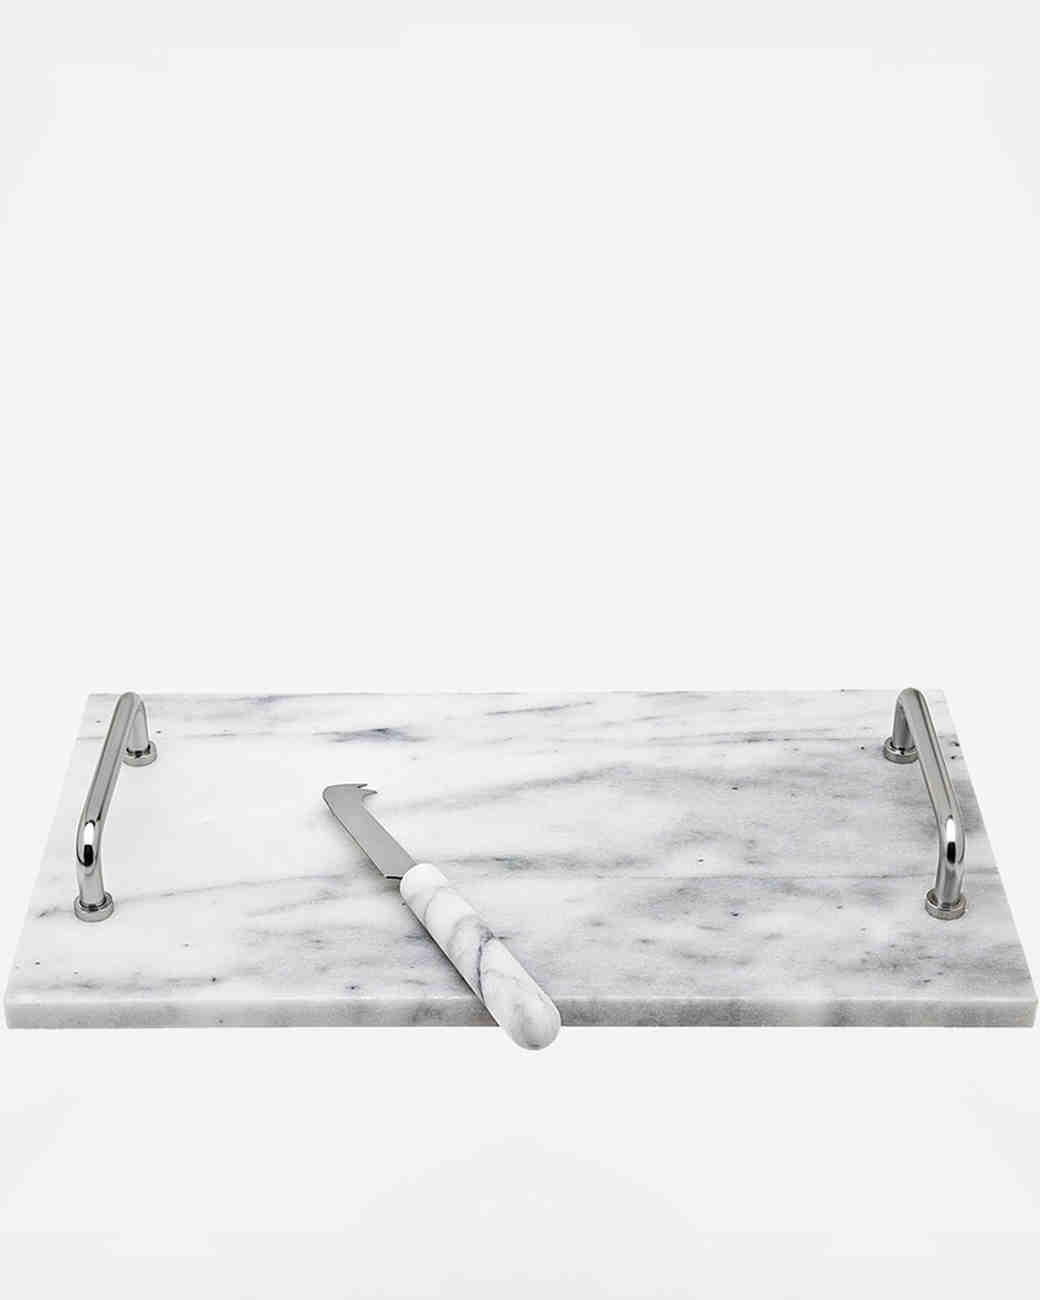 zola-registry-godinger-lacucina-marble-cheese-board-with-knife-0716.jpg